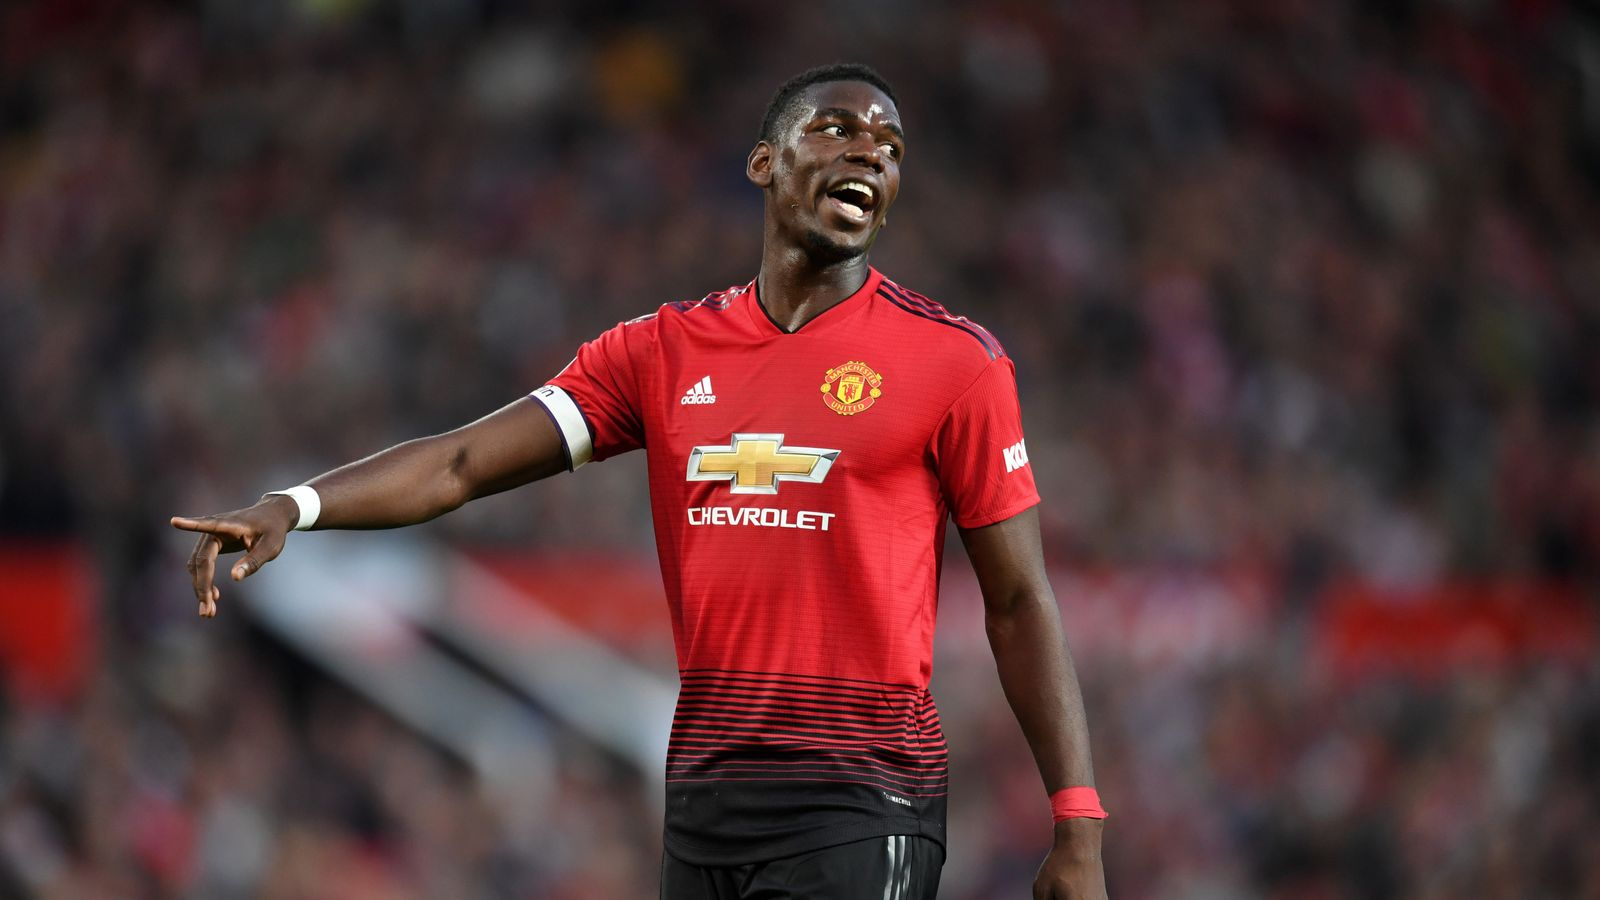 Barcelona will not rule out bid for Paul Pogba | Football ...